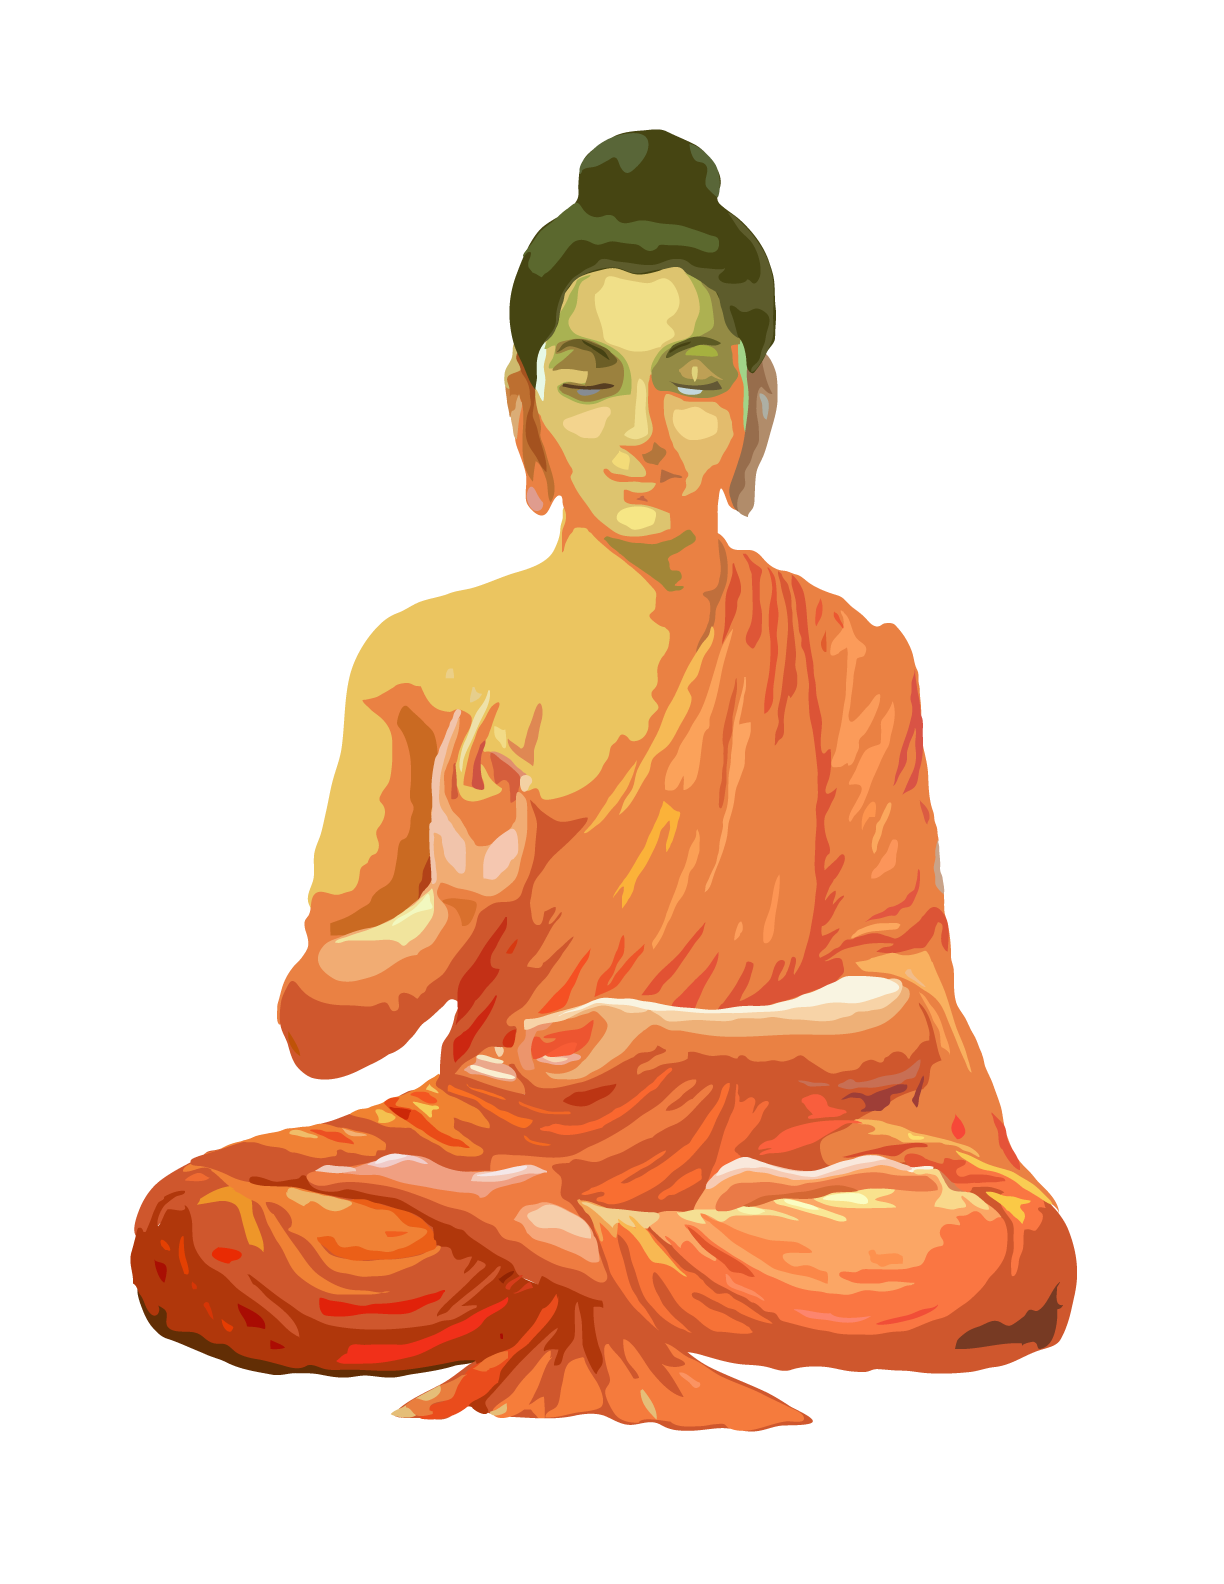 Buddha clipart clear. Png images transparent free